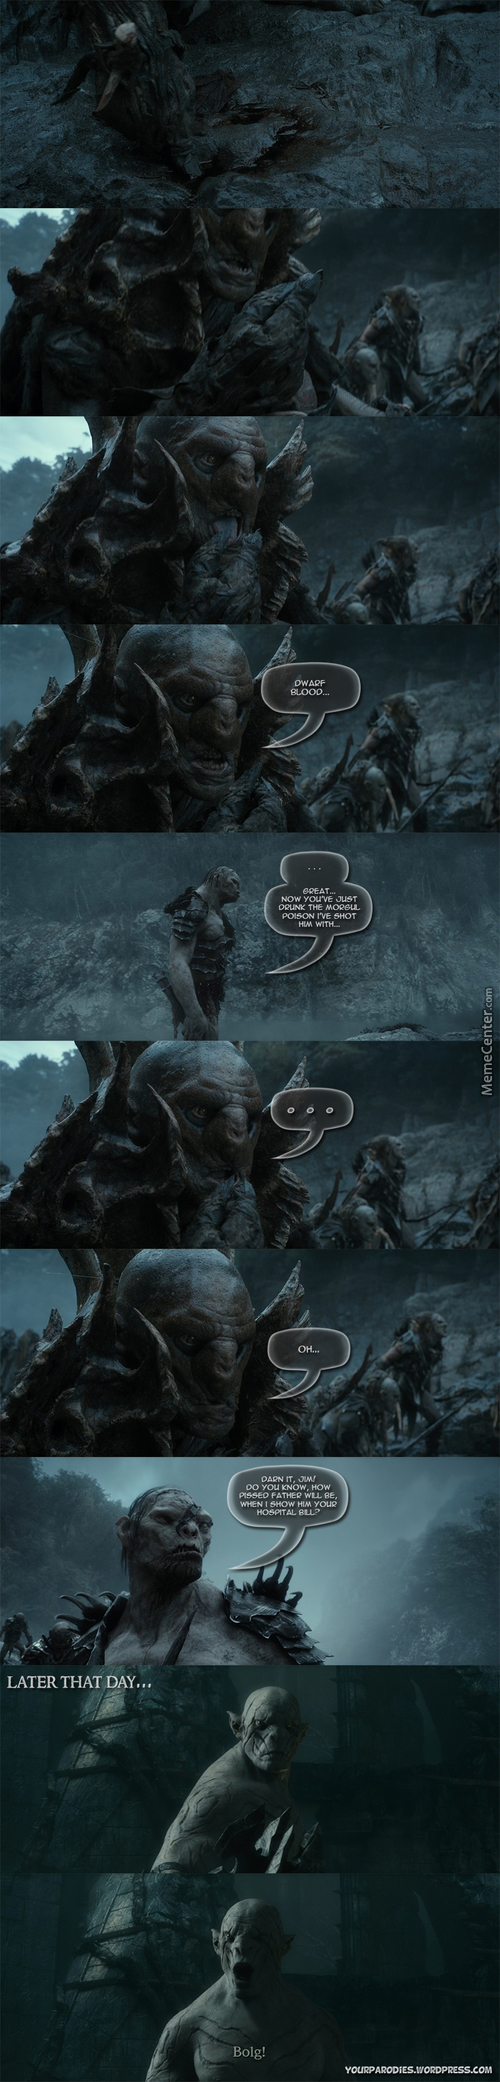 Becaus Of The Hospital Bill, Azog Can't Afford A Good Army